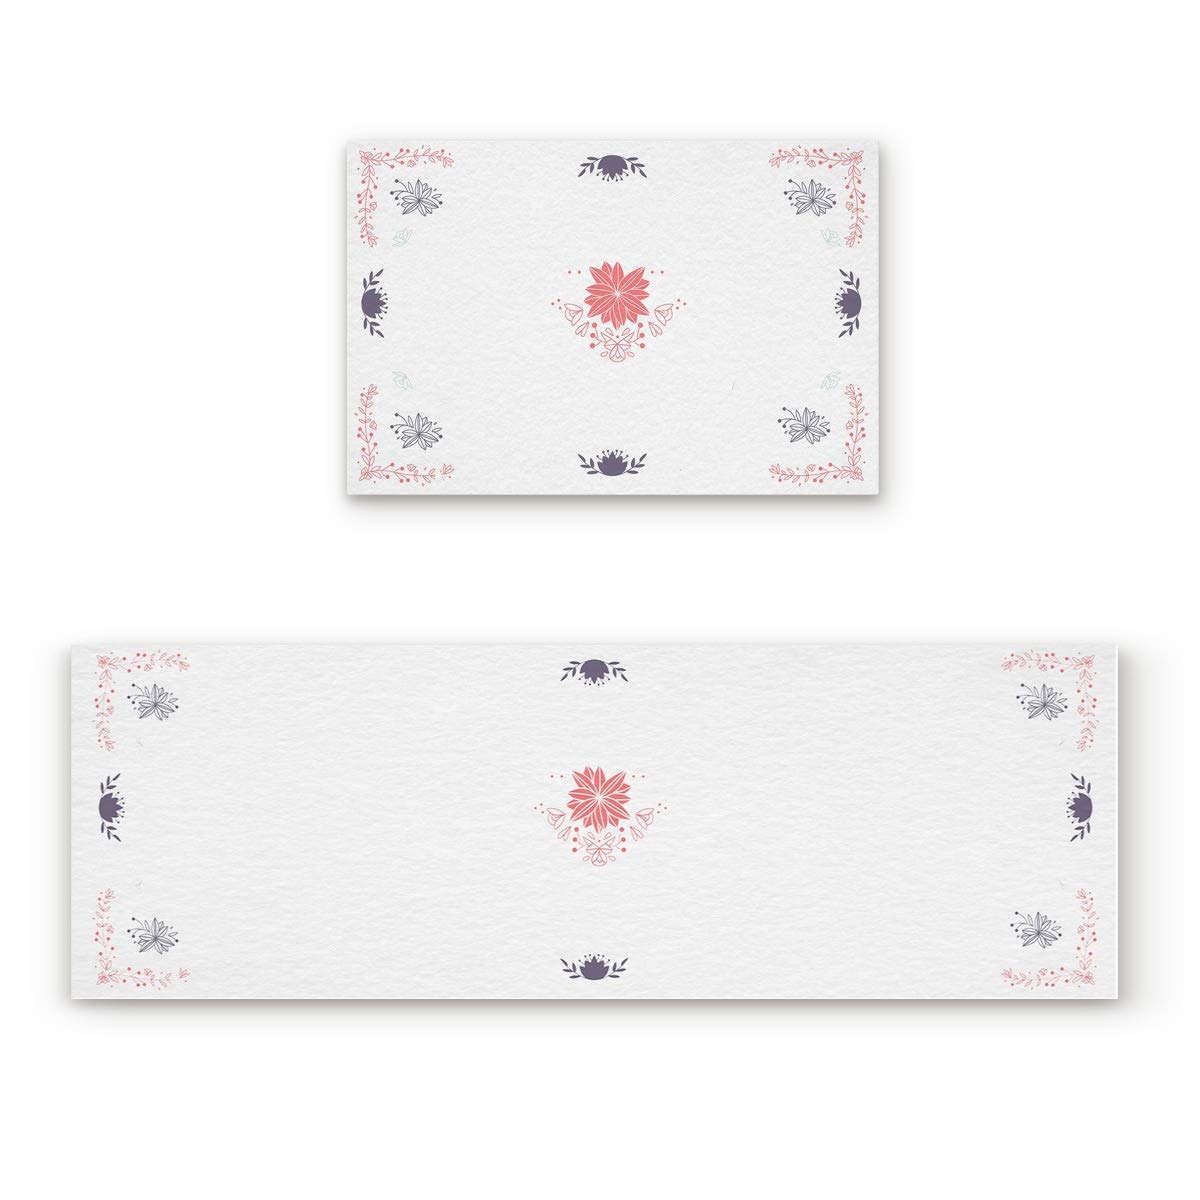 Decorative Pattern34fiy0421 23.6x35.4In+23.6x70.9In Findamy Non-Slip Indoor Door Mat Entrance Rug Rectangle Absorbent Moisture Floor Carpet for Floral Theme Glistened Lily Doormat 23.6x35.4In+23.6x70.9In